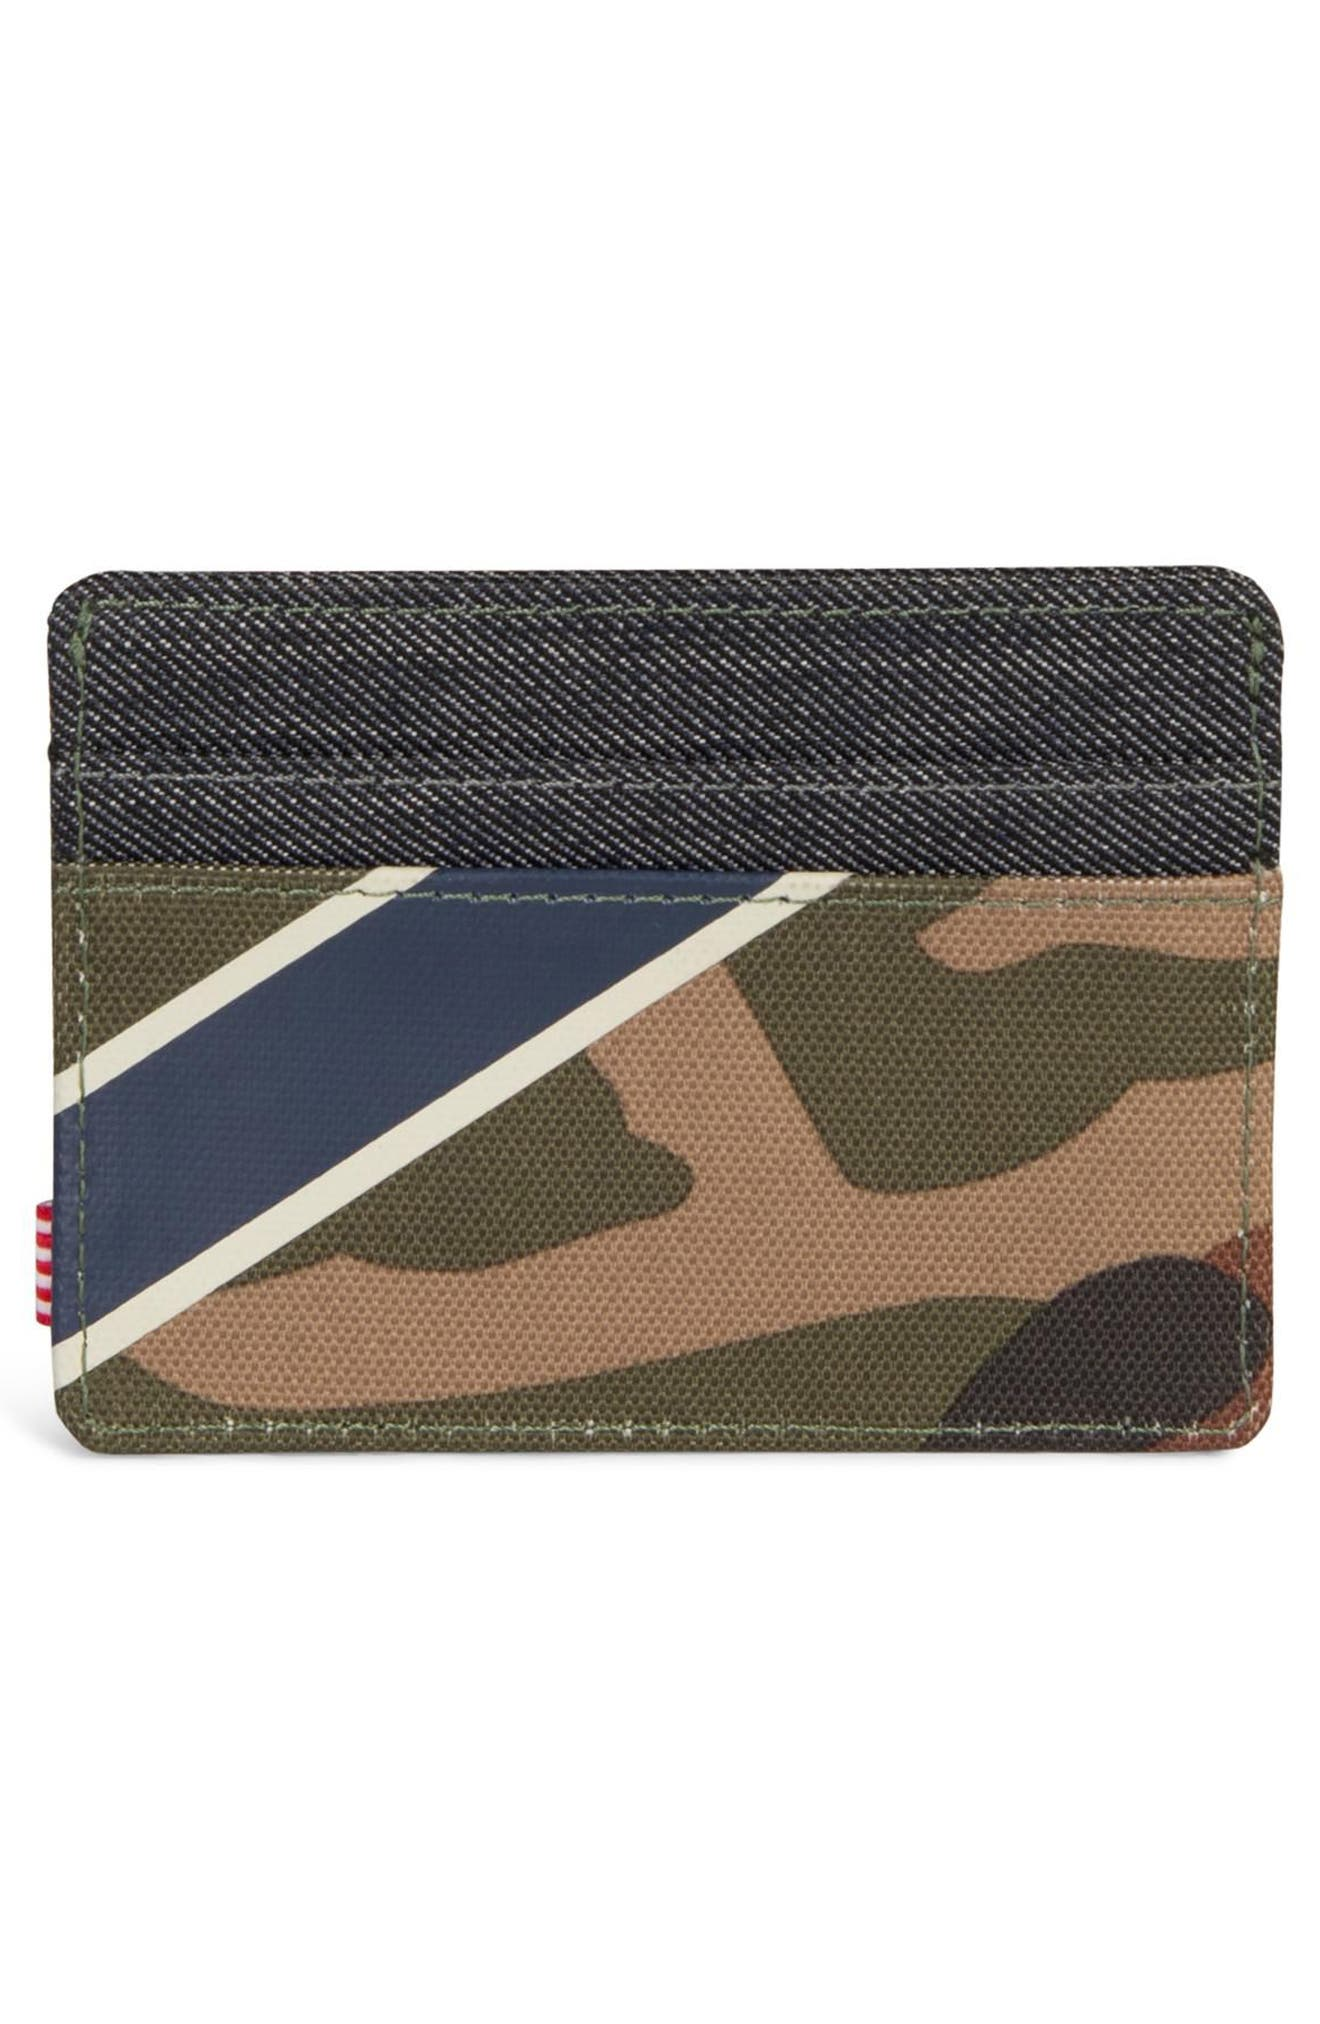 Charlie Card Case,                             Alternate thumbnail 3, color,                             WOODLAND/ SILVER GREEN/ DENIM